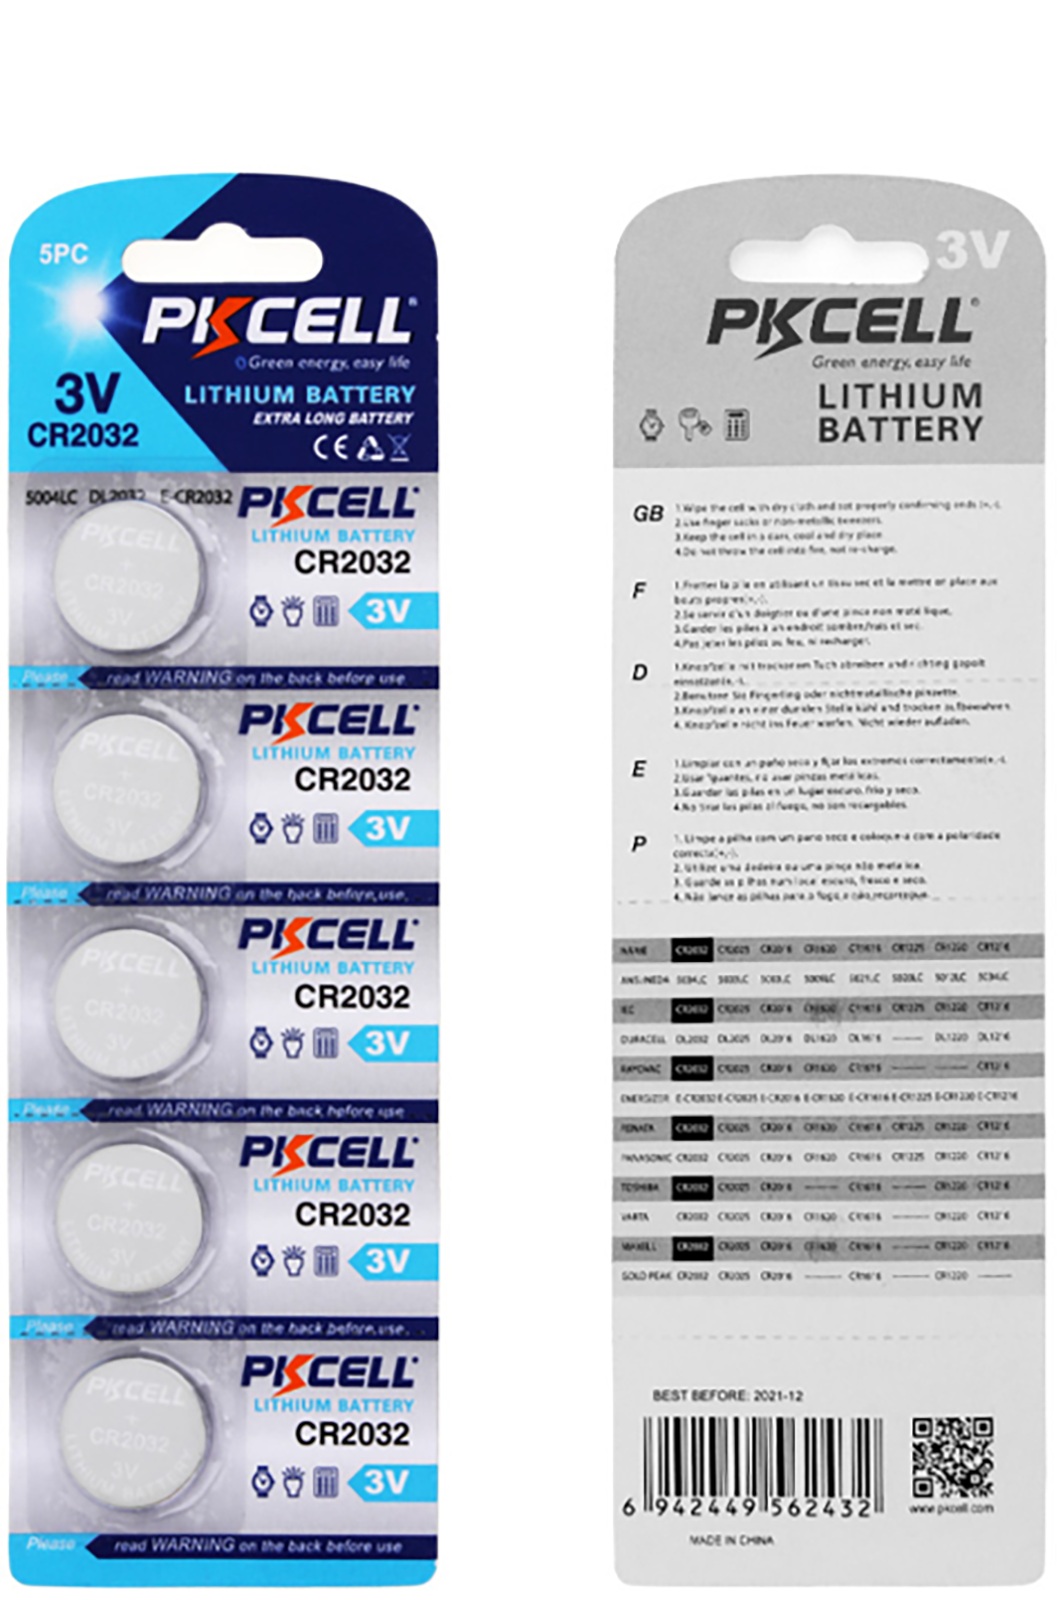 5 Brand New PKCELL CR2032 Button Cell 3v Lithium battery GENUINE EXPIRY 2023 8